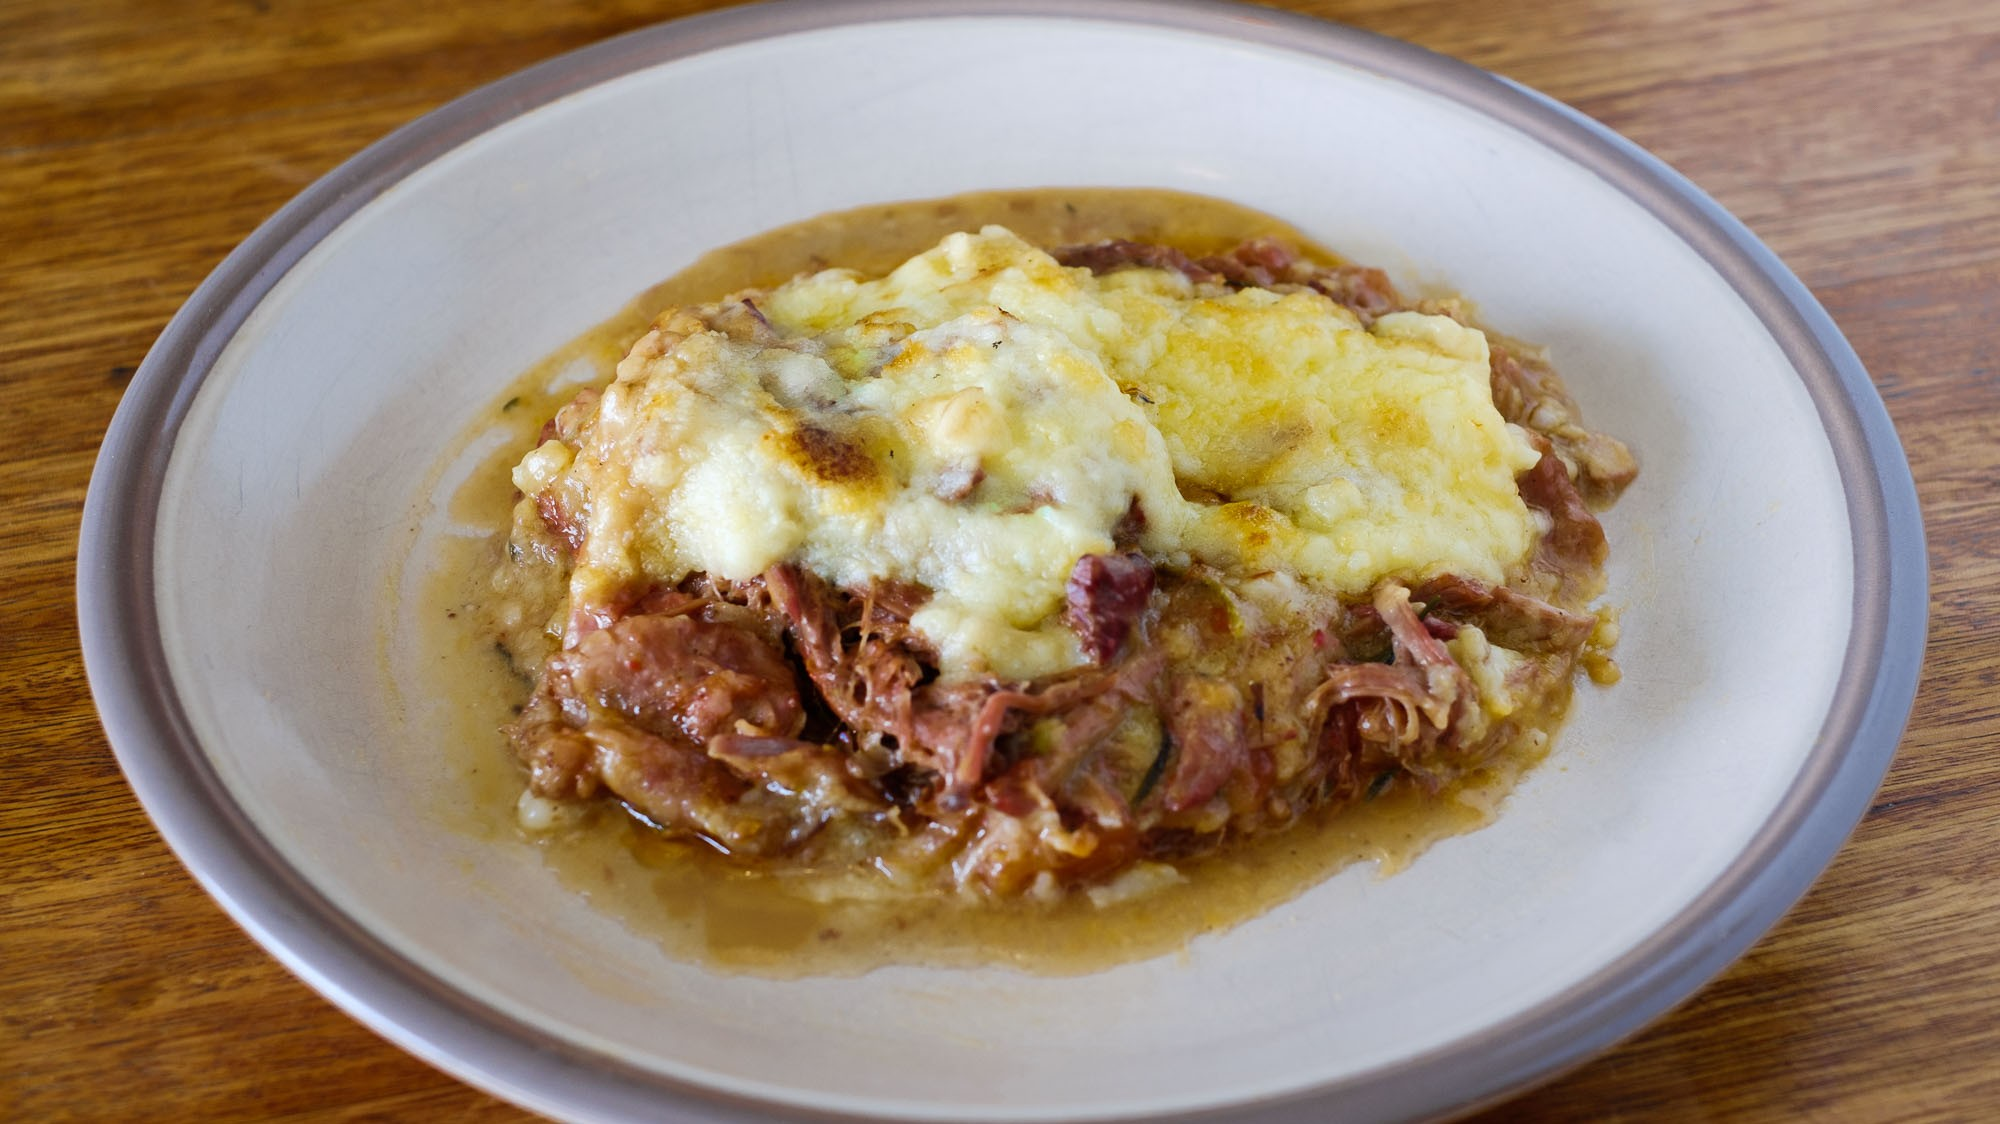 How-To: Make Shepherd's Pie